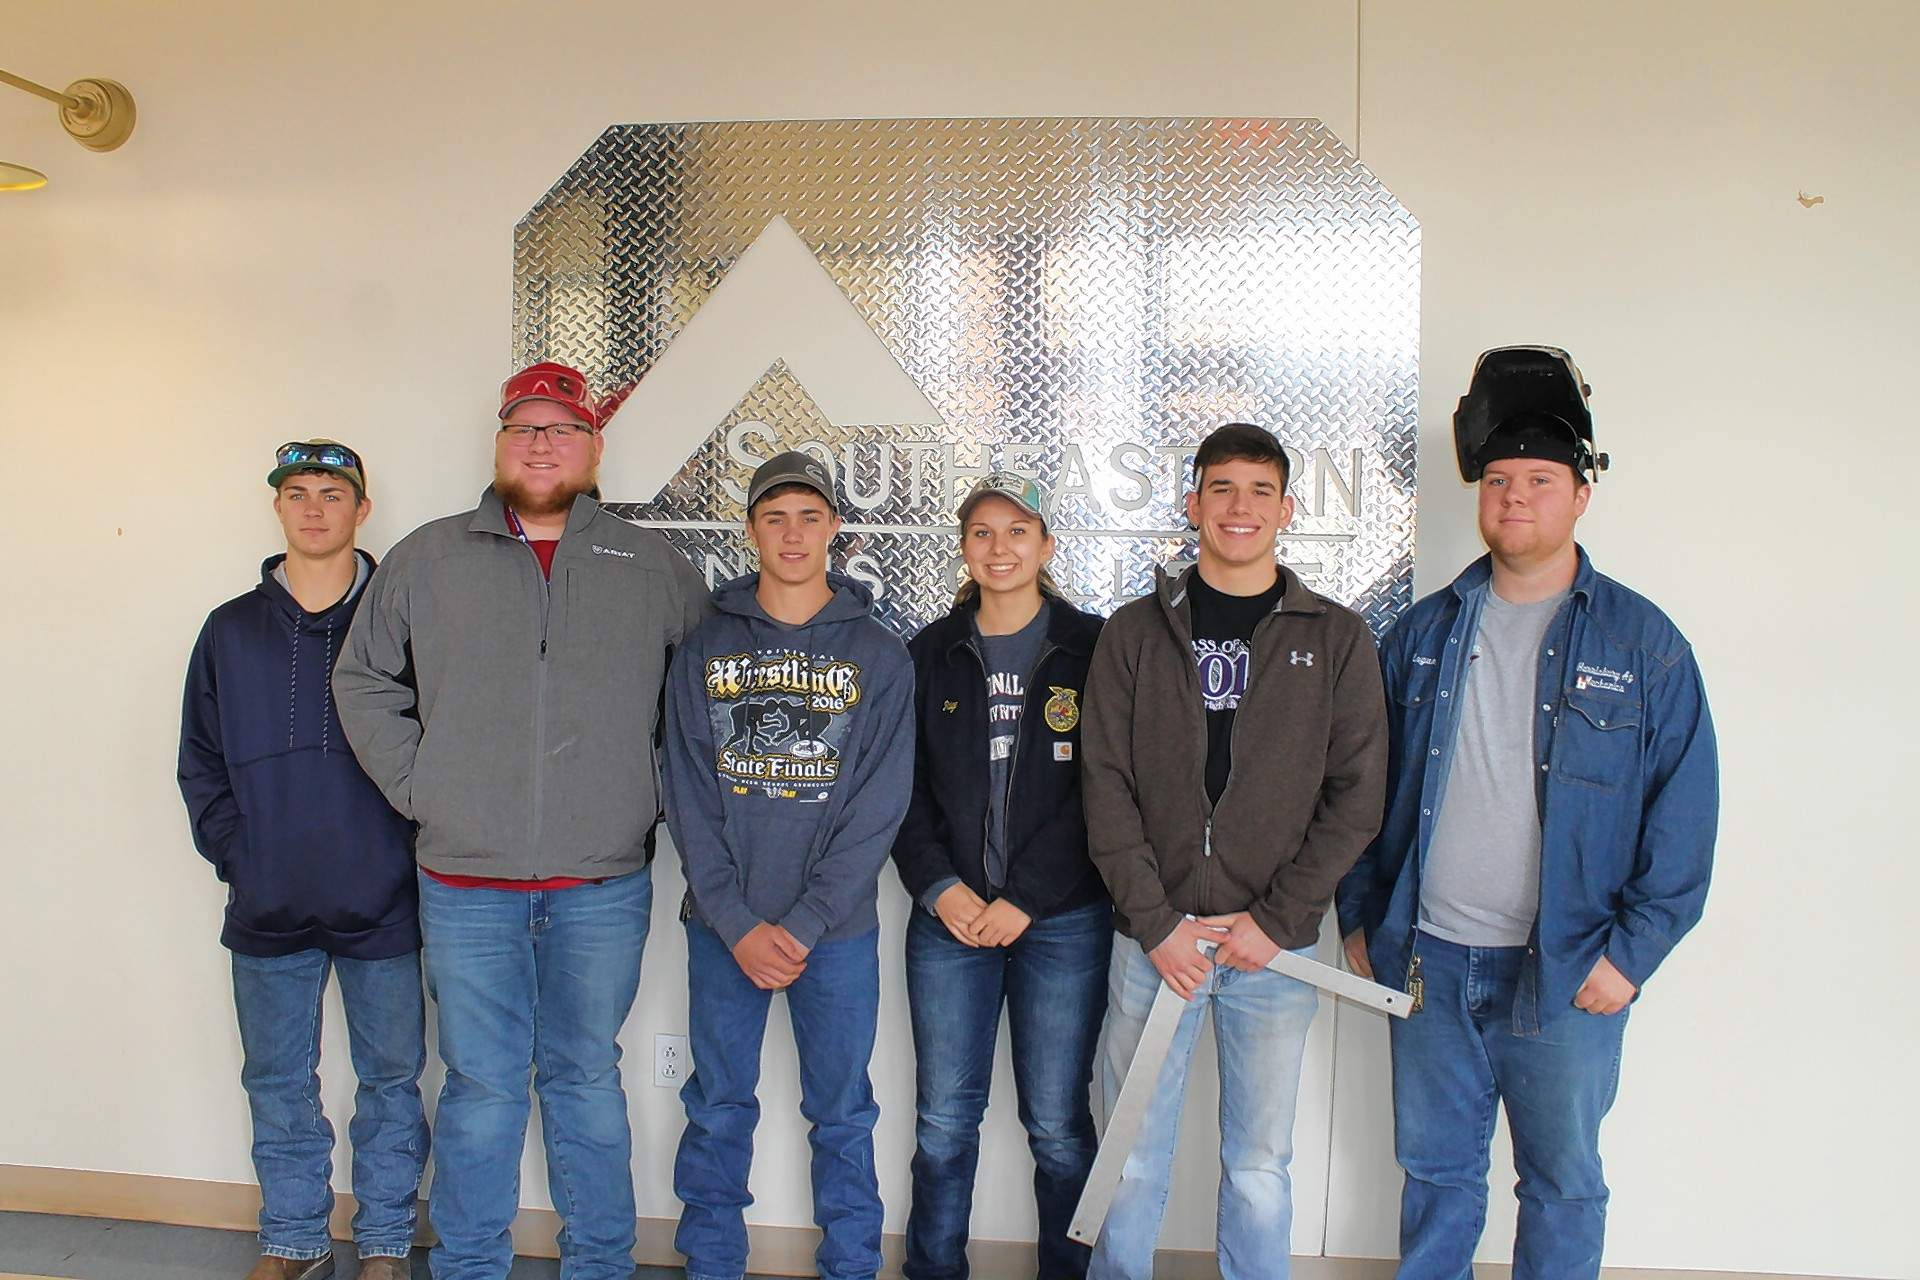 Harrisburg High School's FFA Chapter participated at the 2018 FFA Section 25 Ag Mechanics Competition at Southeastern Illinois College. Pictured are (not in order): Kody Cavender, Kyle Cavender, Paige Cook, Logan Hunt, Cade Joiner and Caleb Jones.